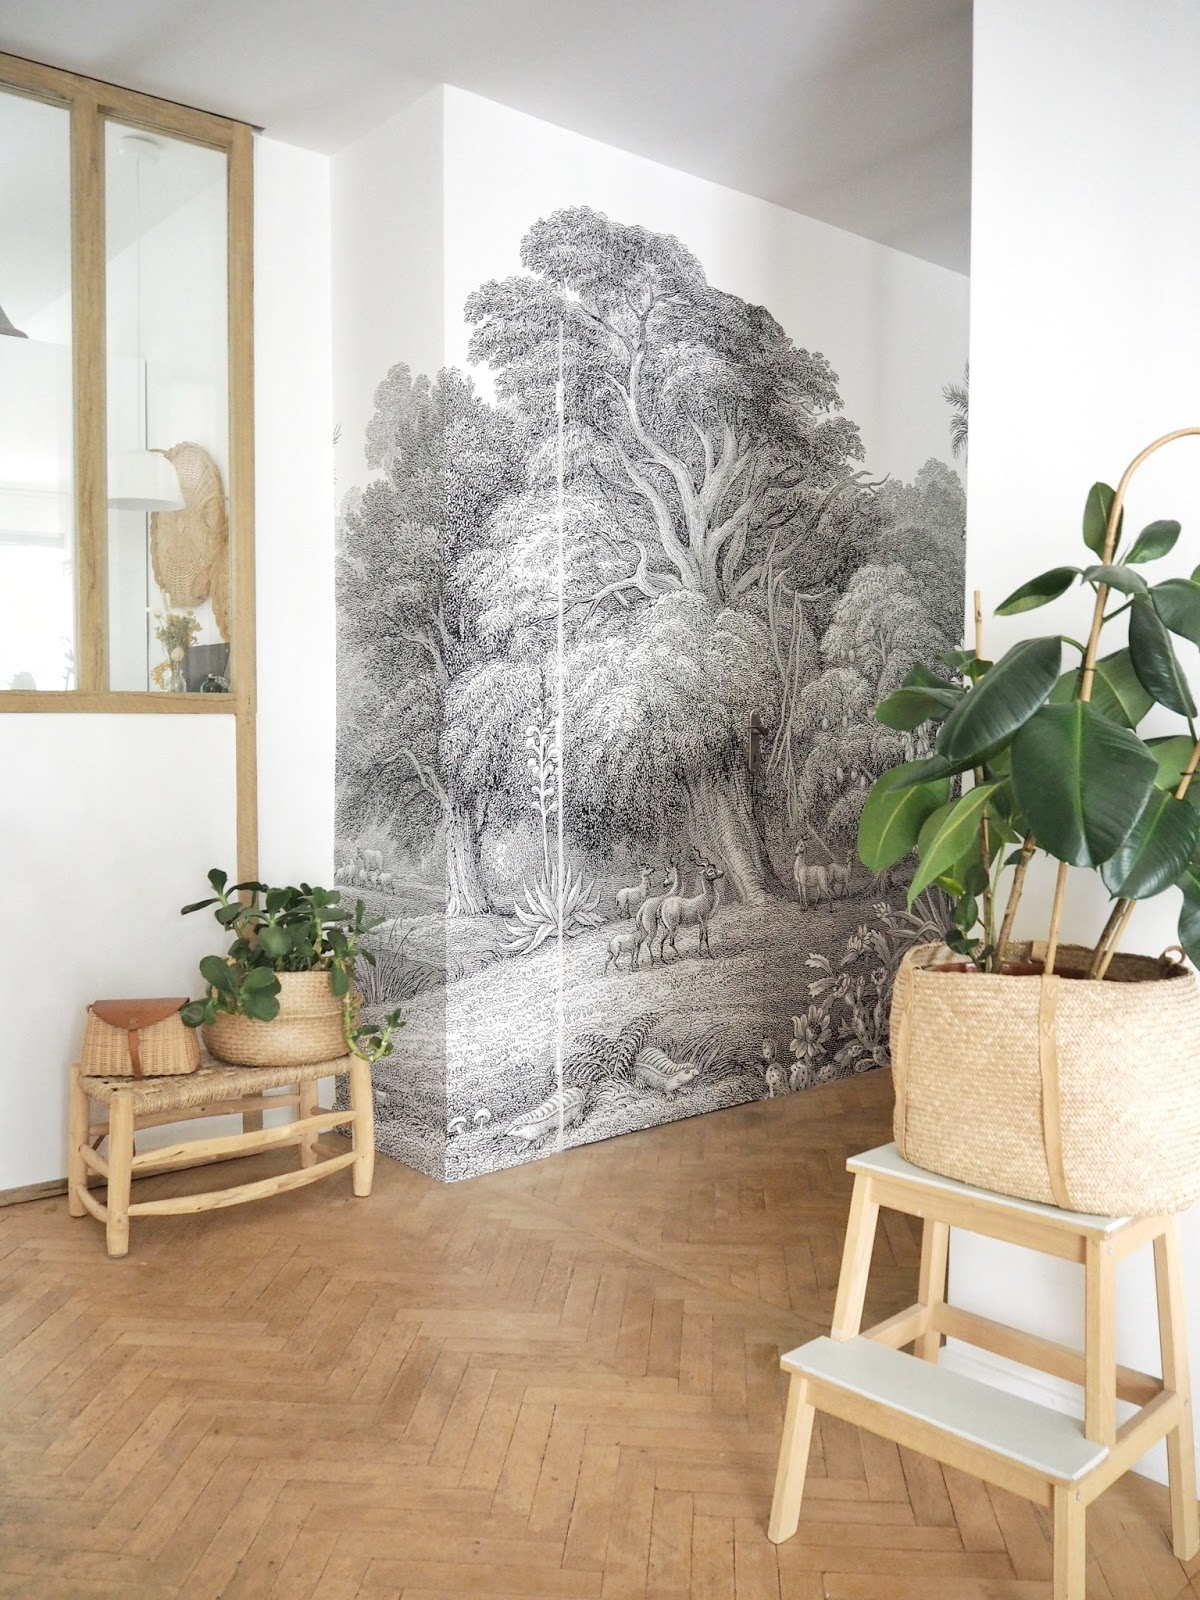 Panoramic Wallpaper For Our Hallway With Rebel Walls Slow Design